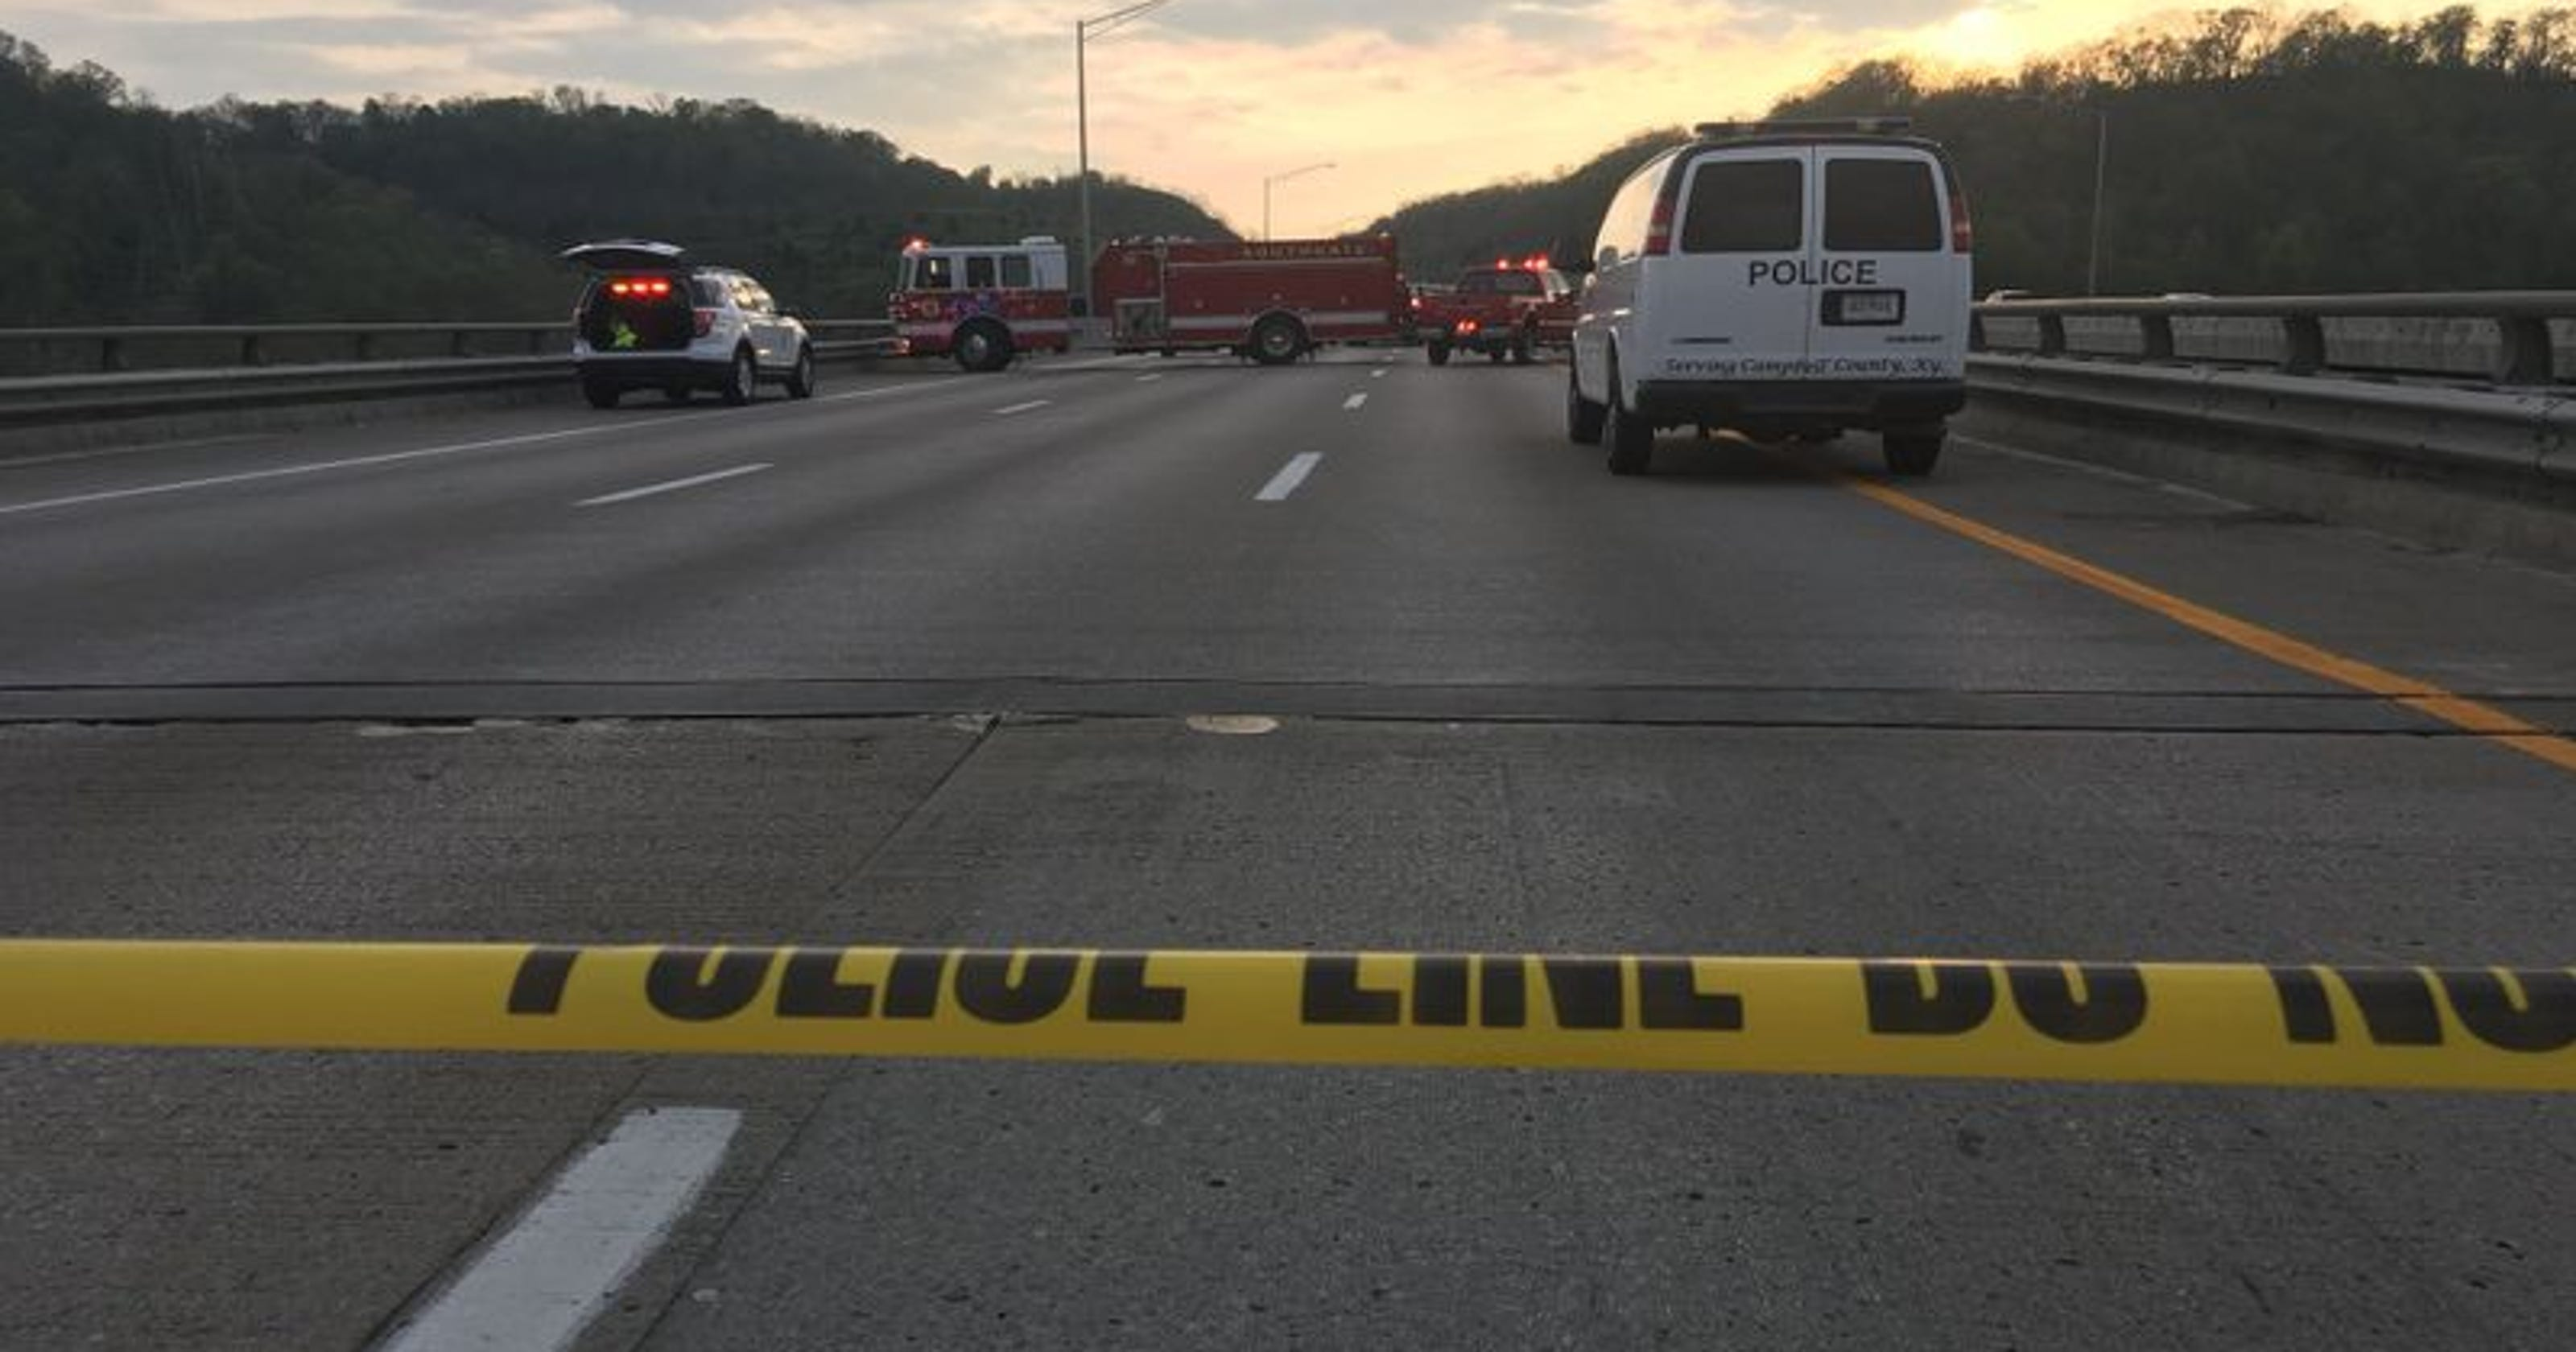 Child killed, others involved in Northern Kentucky crash ID'd